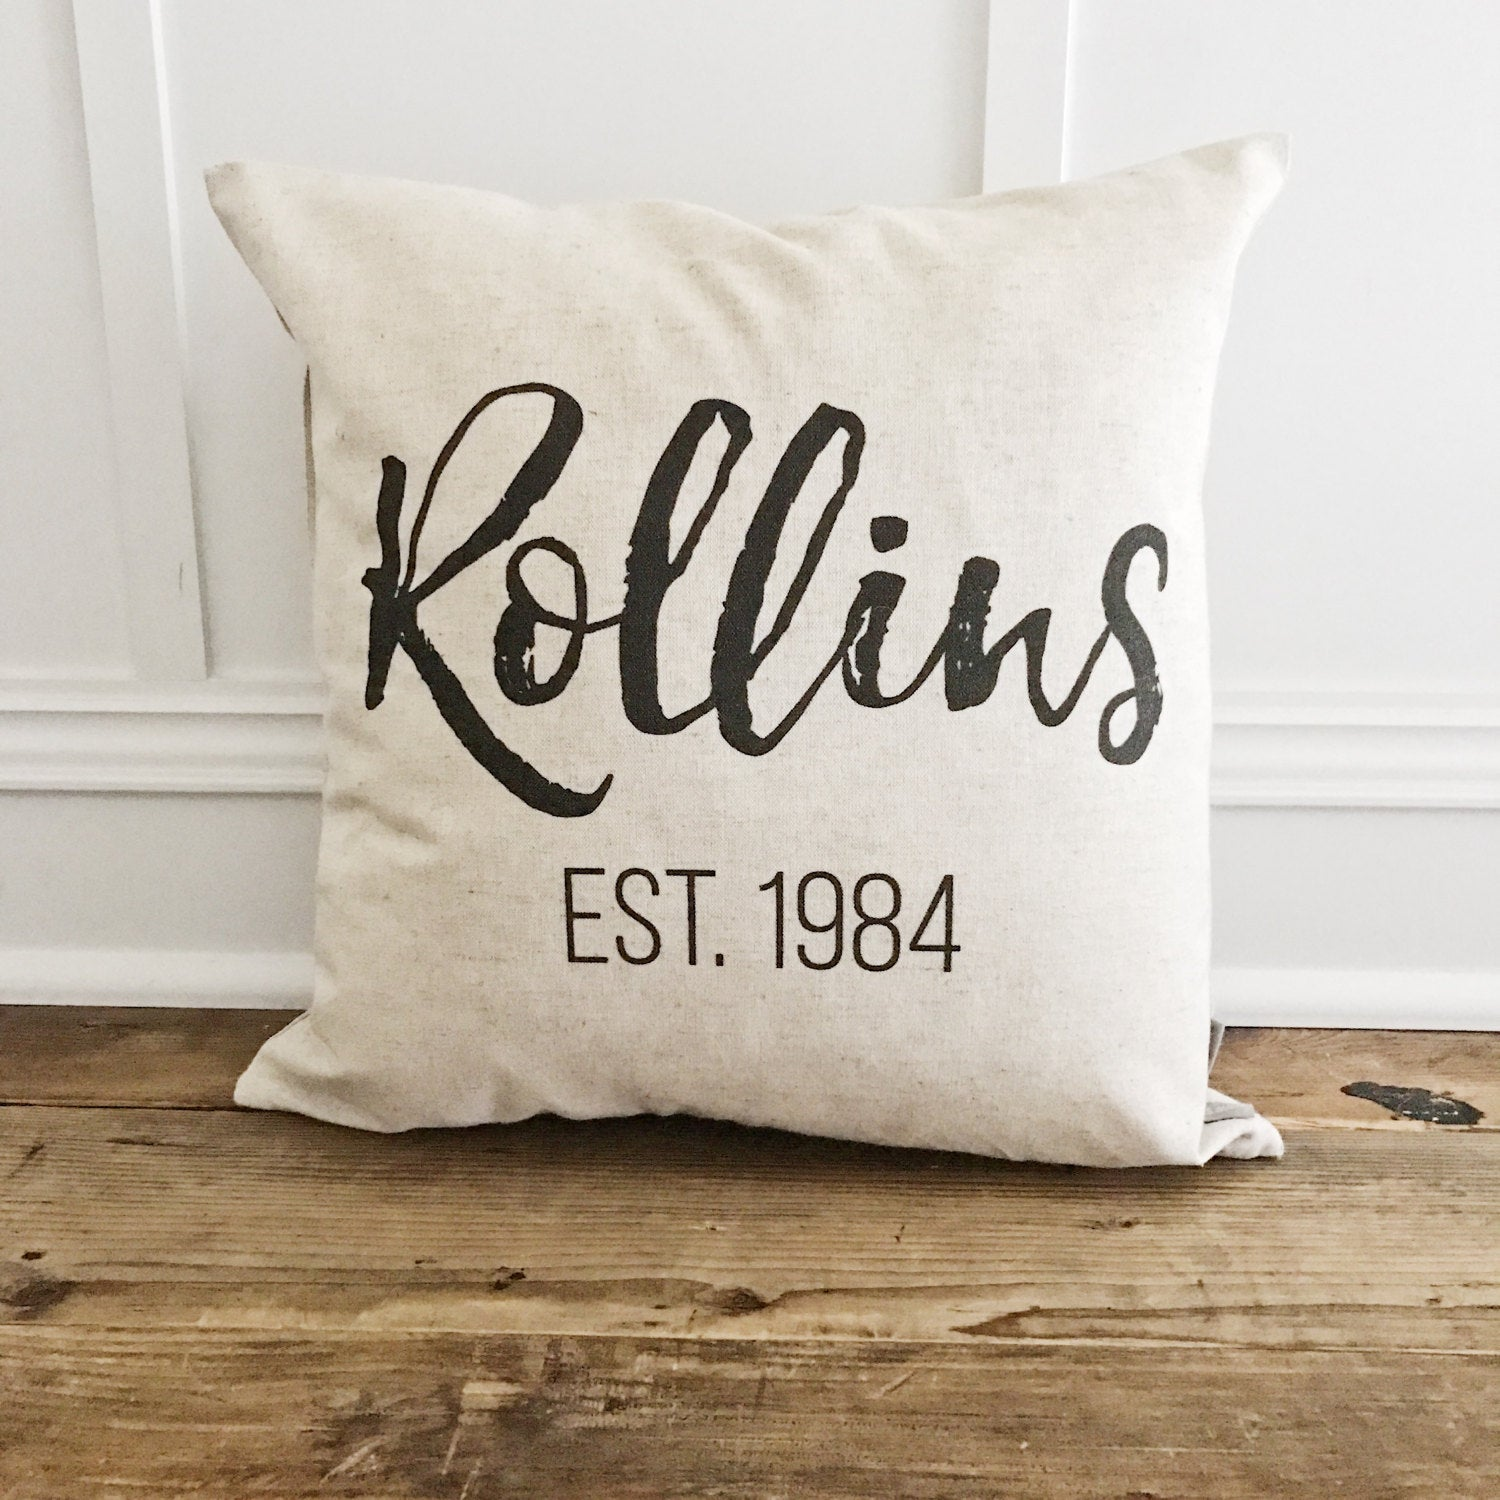 Custom Name & Est. Date Pillow Cover - Linen and Ivory